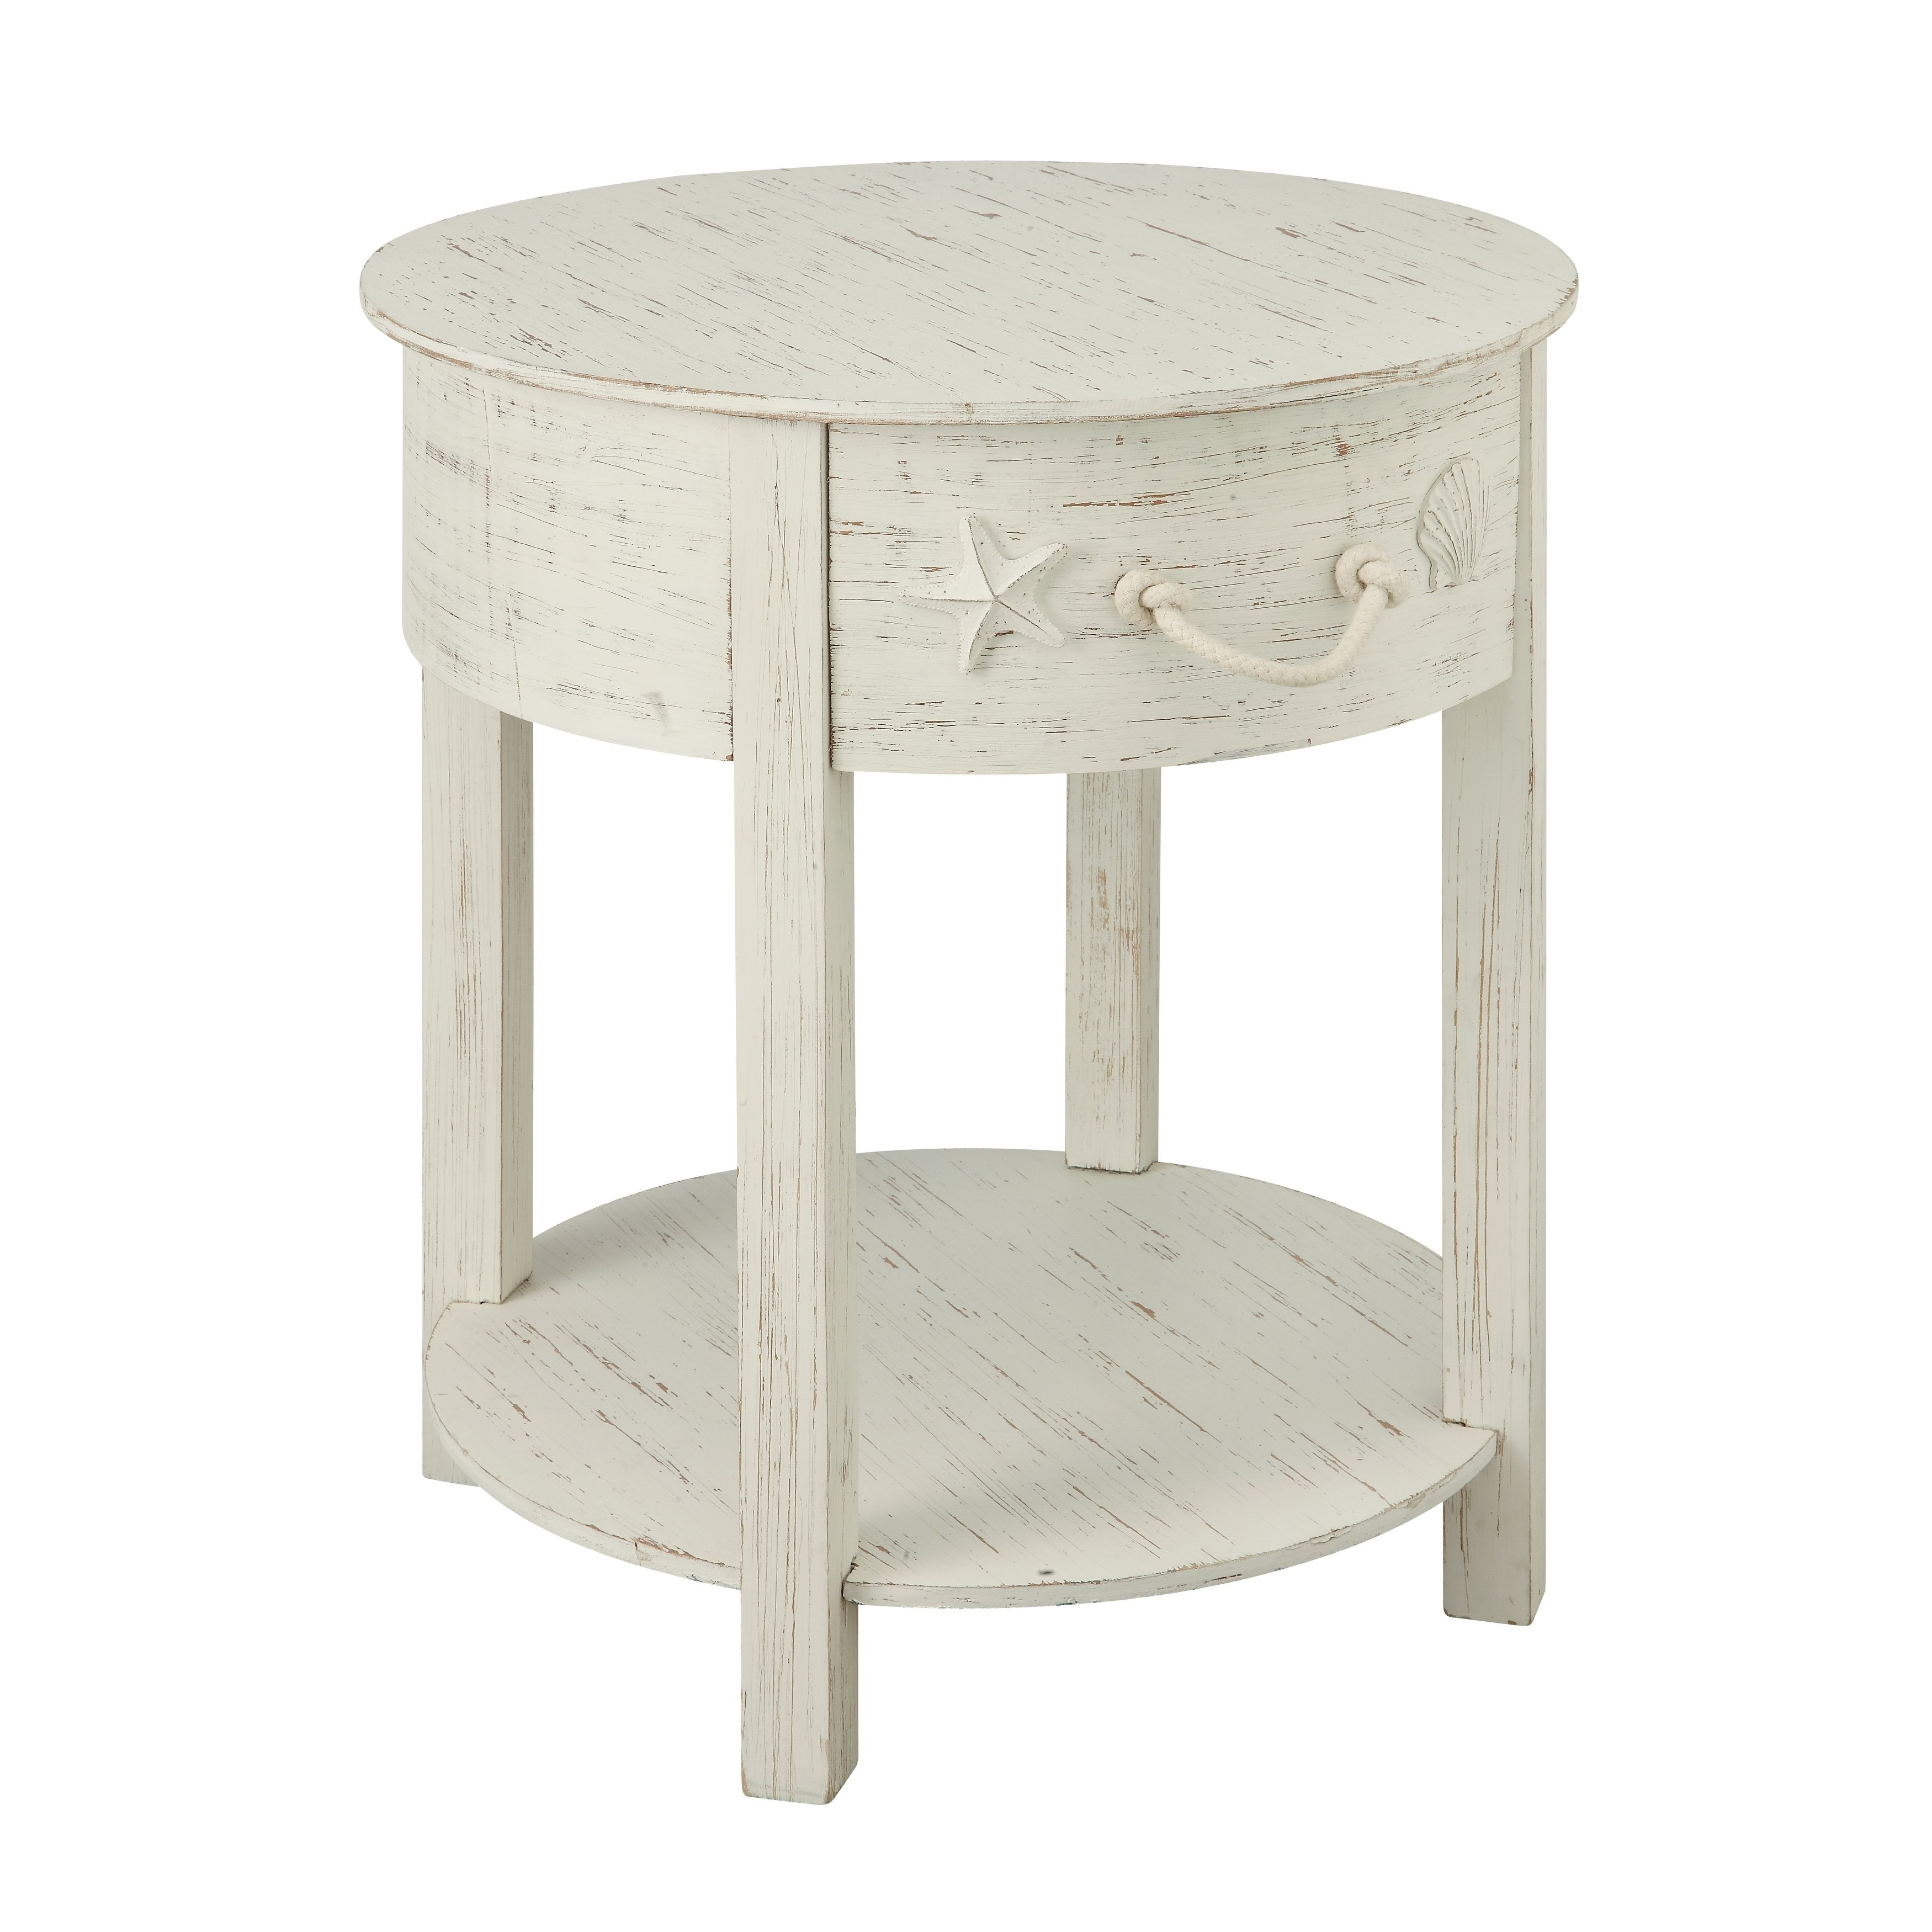 one drawer accent table free shipping today target kindle fire small red outdoor corner narrow console inches deep living room sets oriental bedside lamps square legs white unit